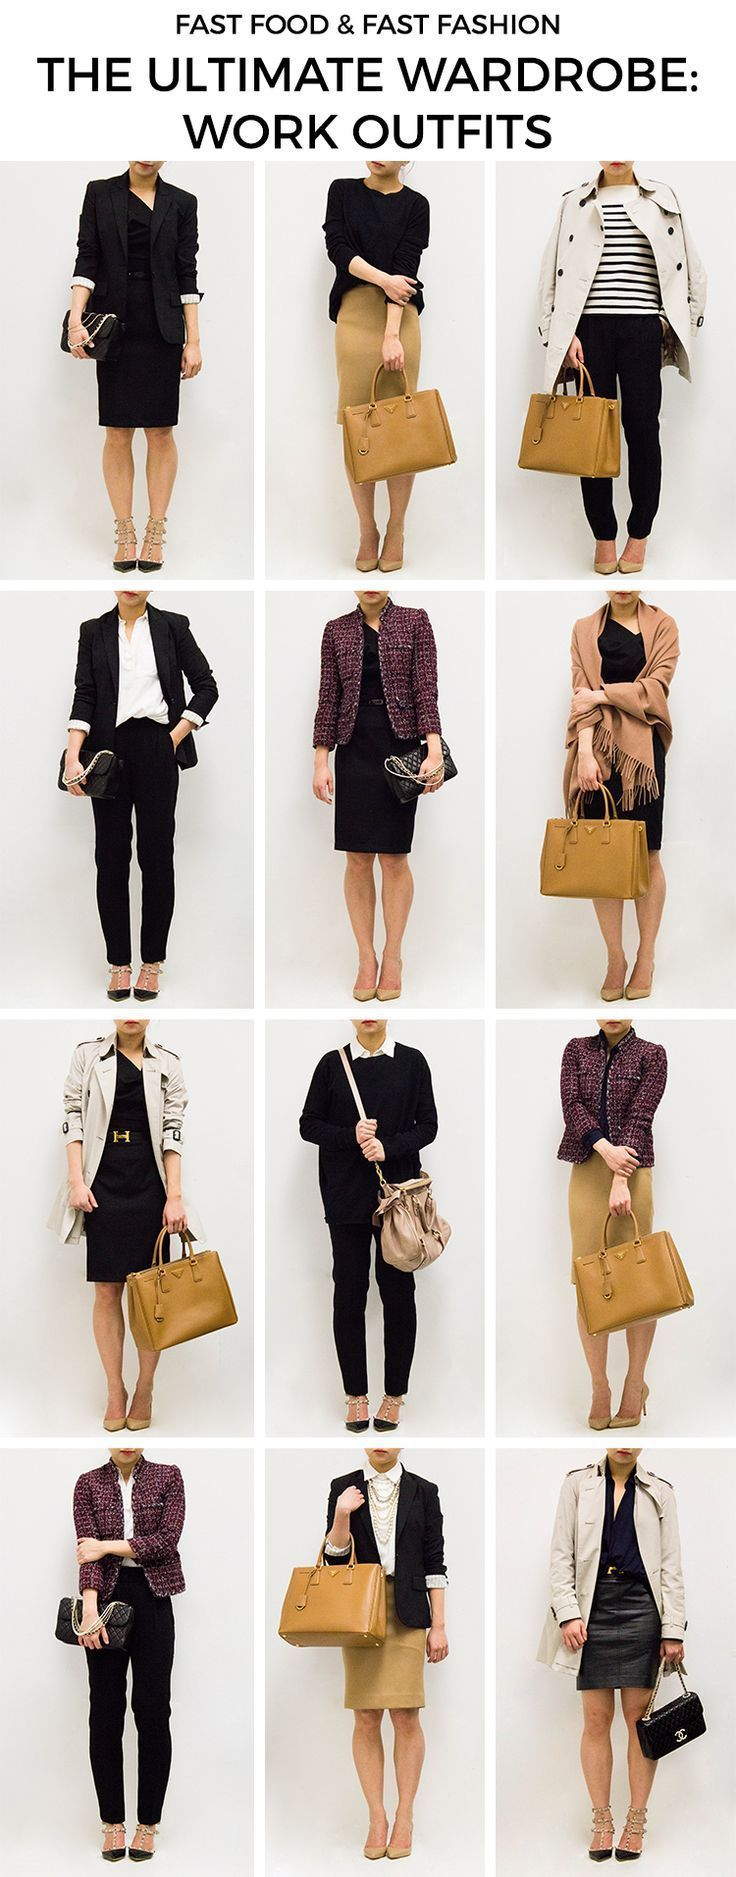 office main navy pin mix for wardrobe mainstyle match on style old and the